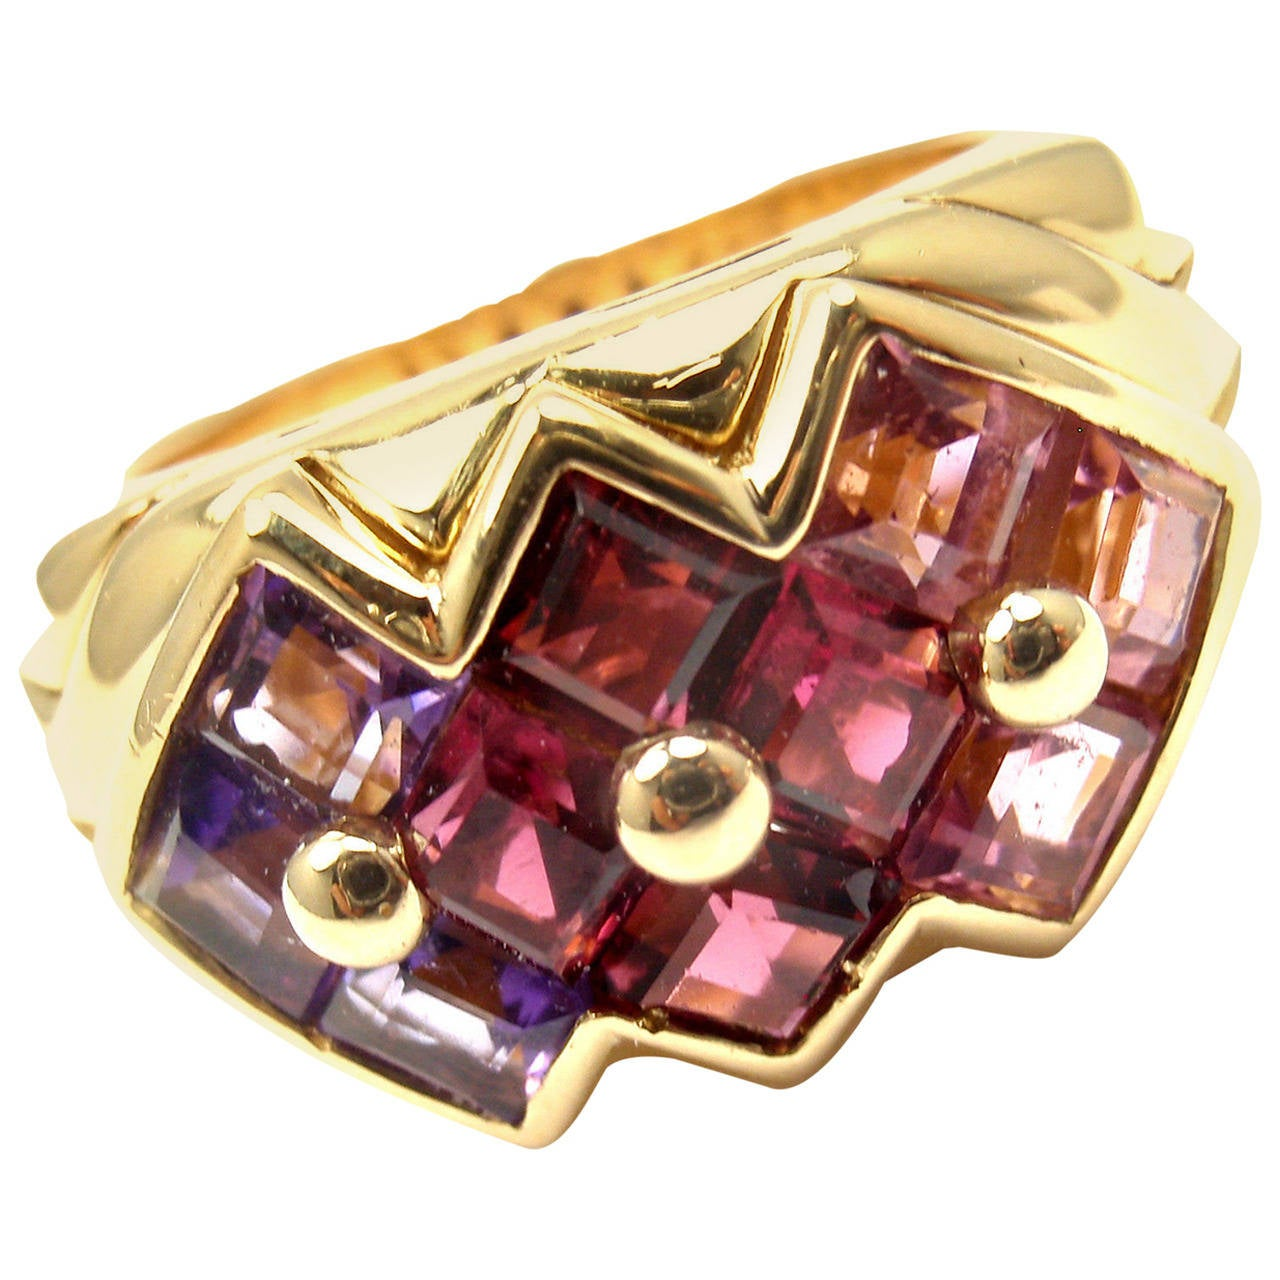 Bulgari Pink Tourmaline Amethyst Yellow Gold Ring 1